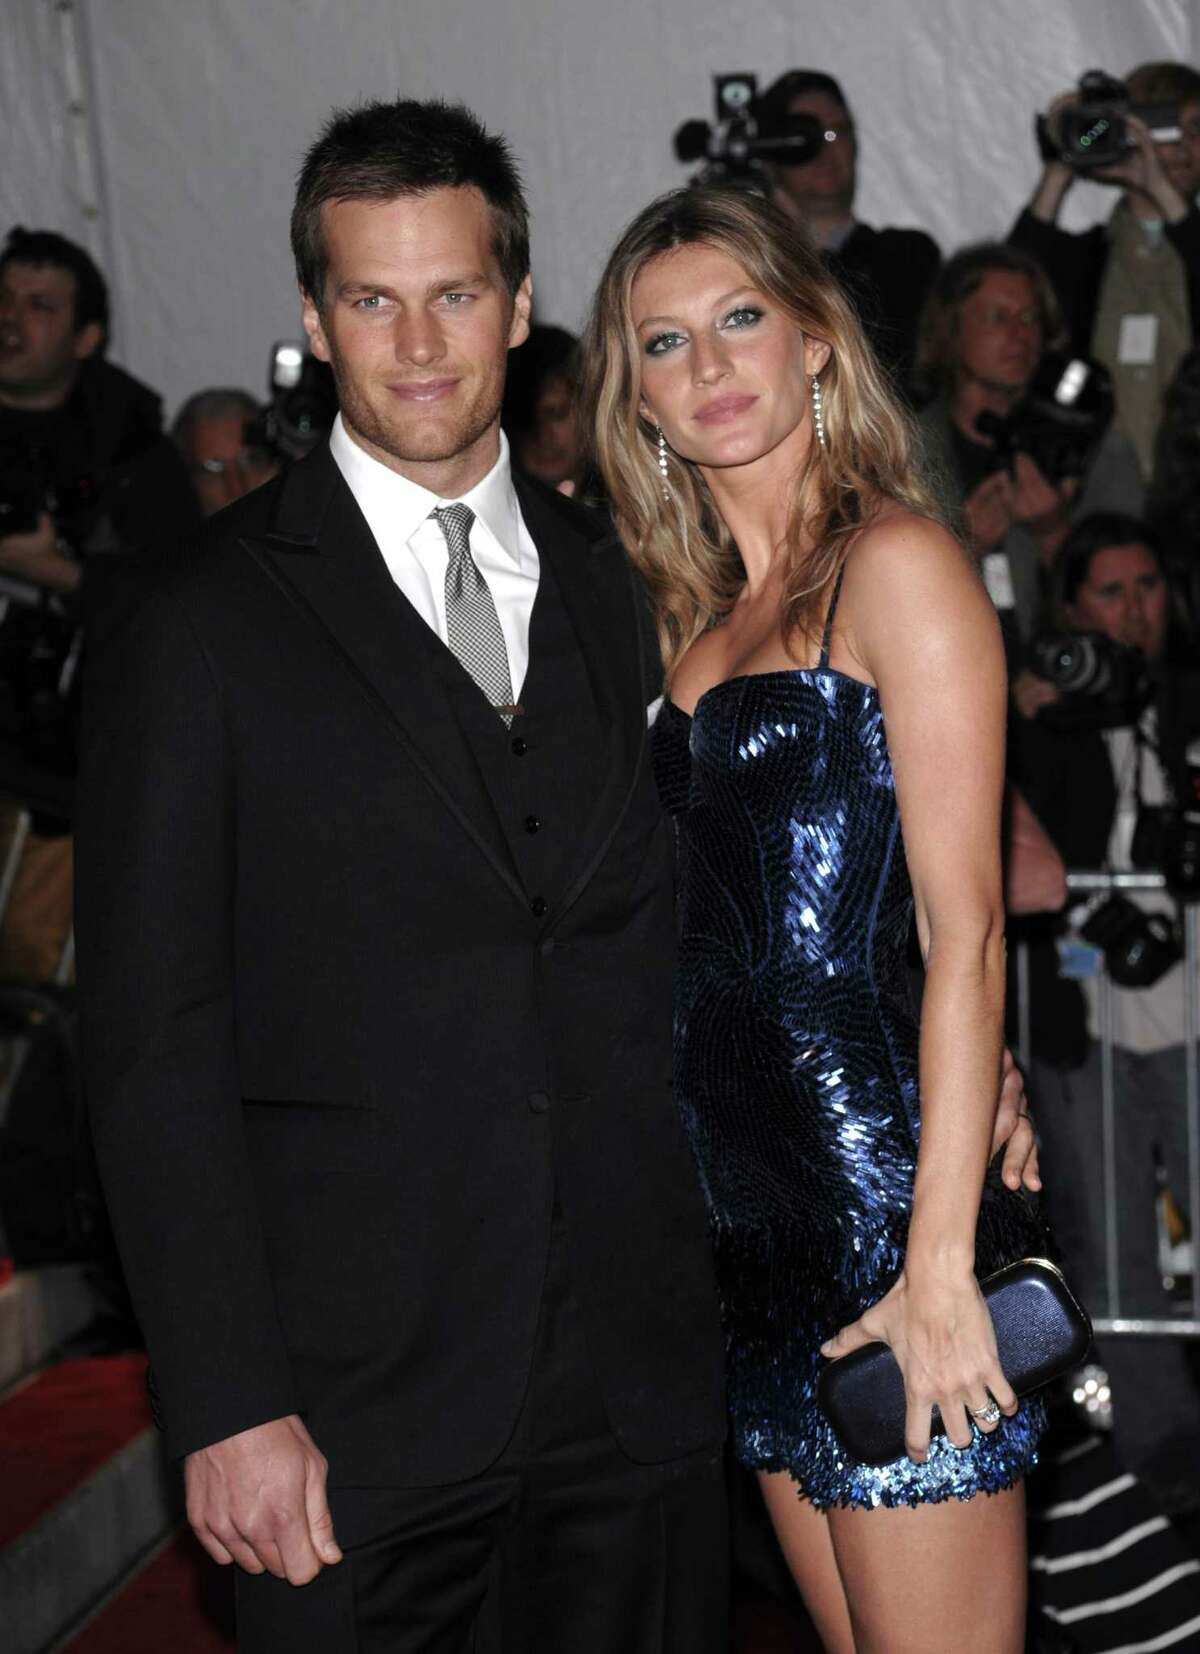 Tom Brady and Gisele Bundchen could be eyeing Greenwich for another addition to their real estate portfolio, the New York Post reports.